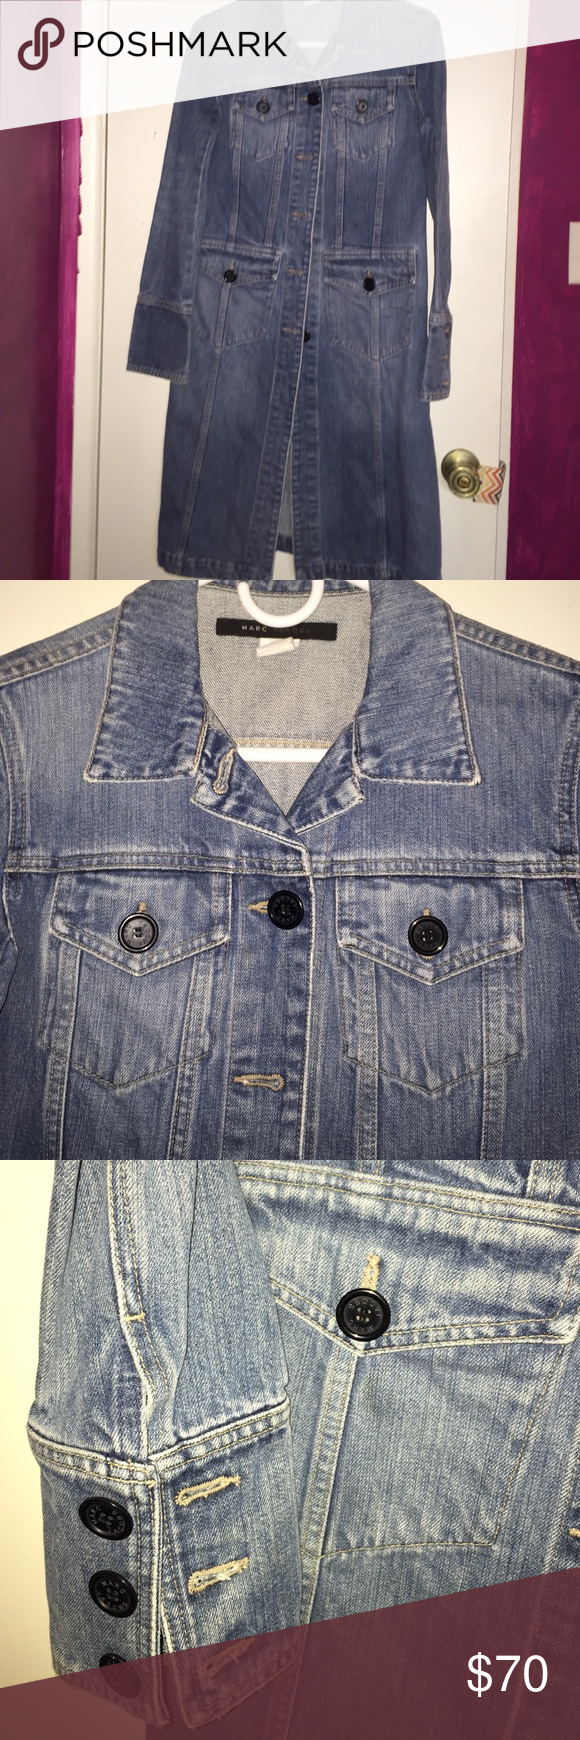 Classic Marc Jacobs denim trench This Marc Jacobs trench is so cute on. Hits midcalf. Just way too small for me now. Missing one black button towards the bottom. Easily found and sewn on but that's why I'm pricing it so low! Marc Jacobs Jackets & Coats Trench Coats